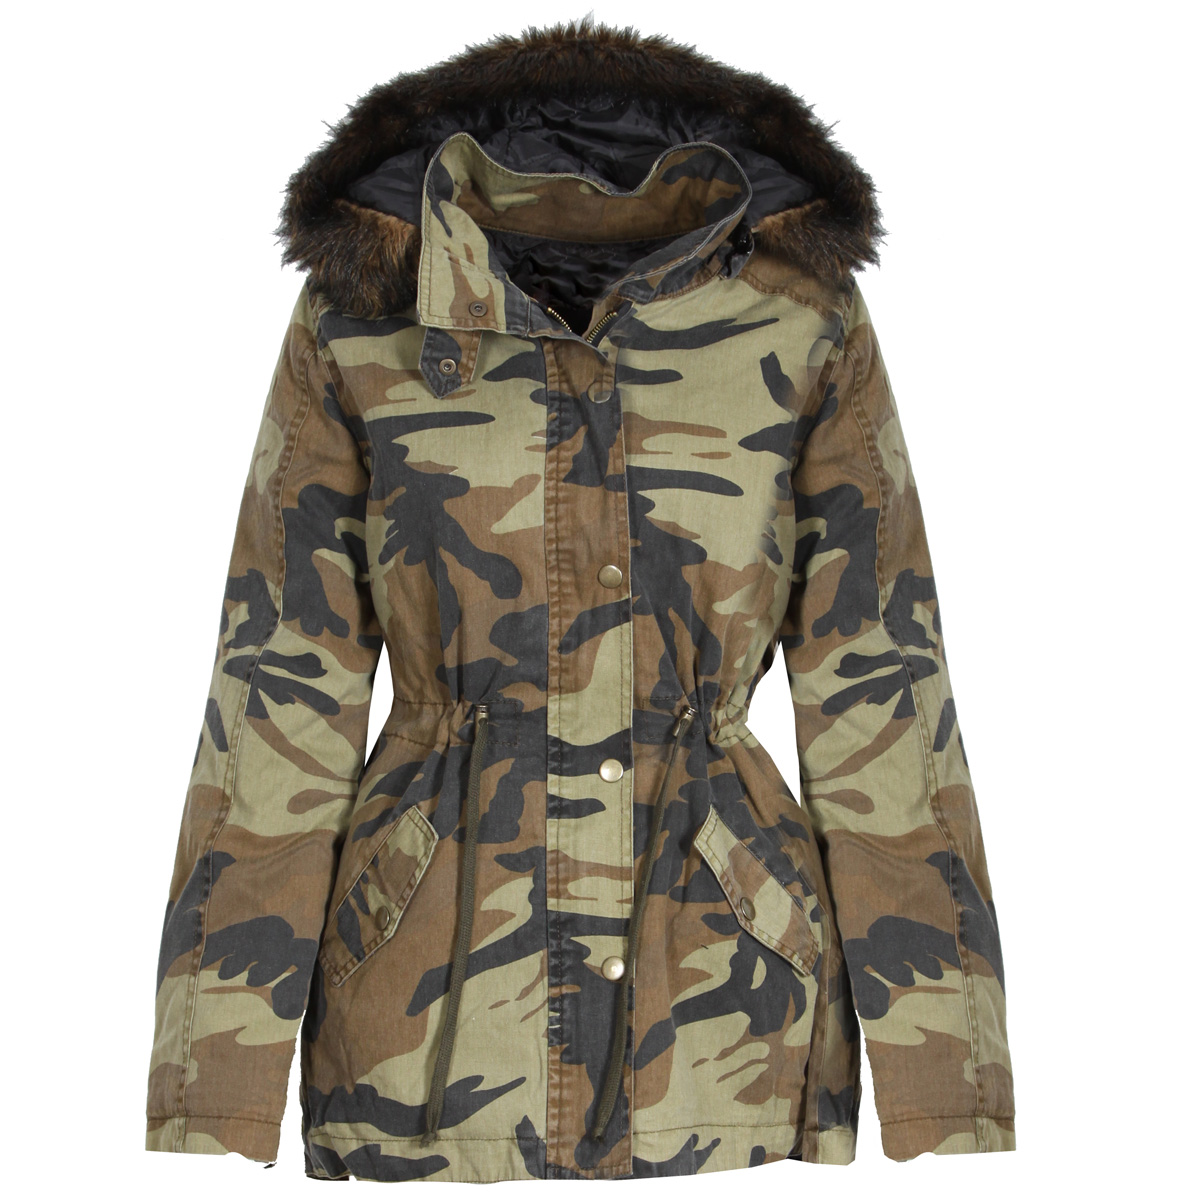 Buy the latest army fur coat cheap shop fashion style with free shipping, and check out our daily updated new arrival army fur coat at free-desktop-stripper.ml